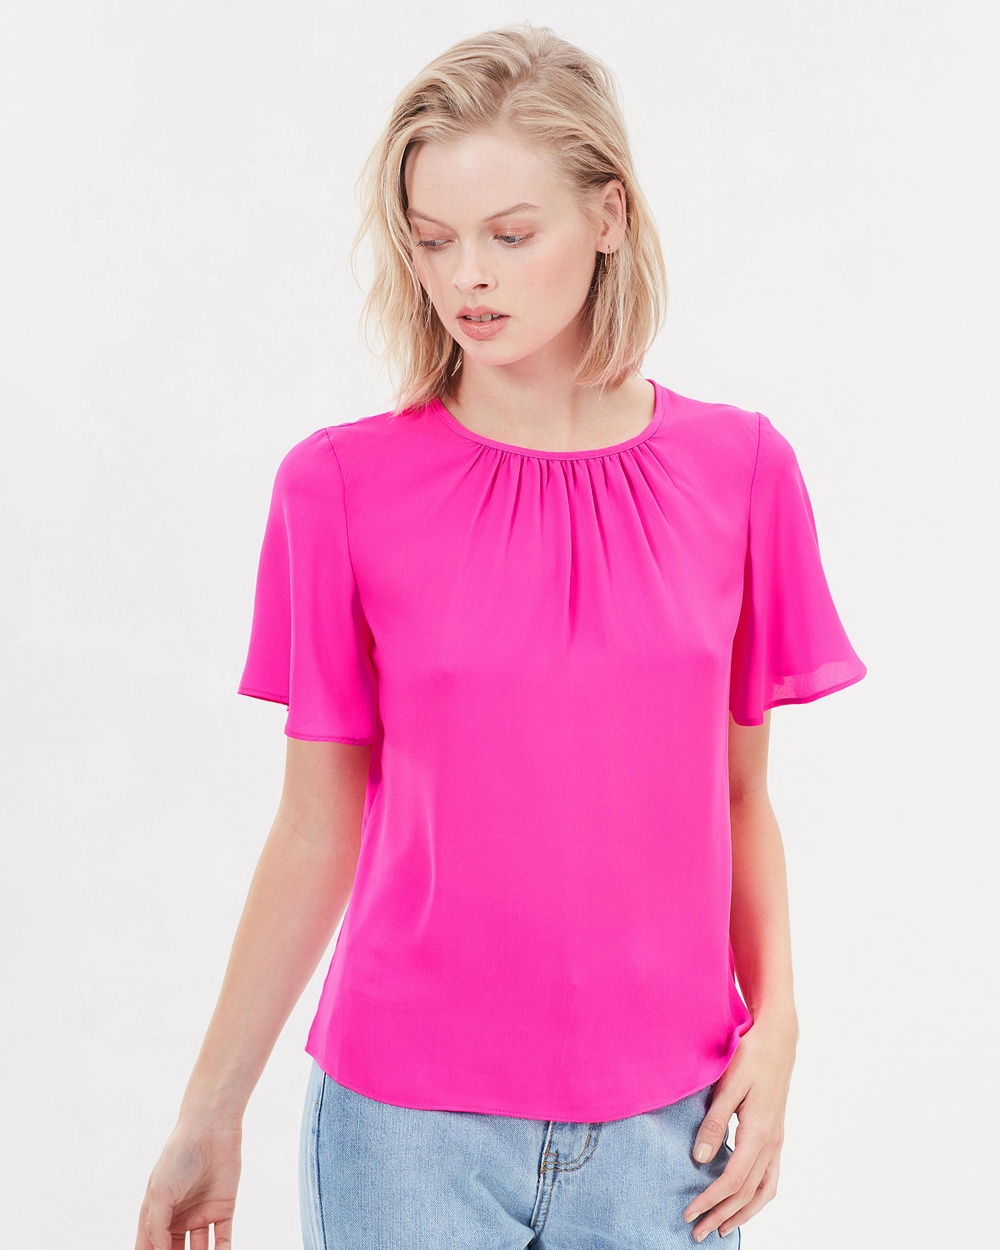 Warehouse Angel Sleeve Top Tops Pink Angel Sleeve Top